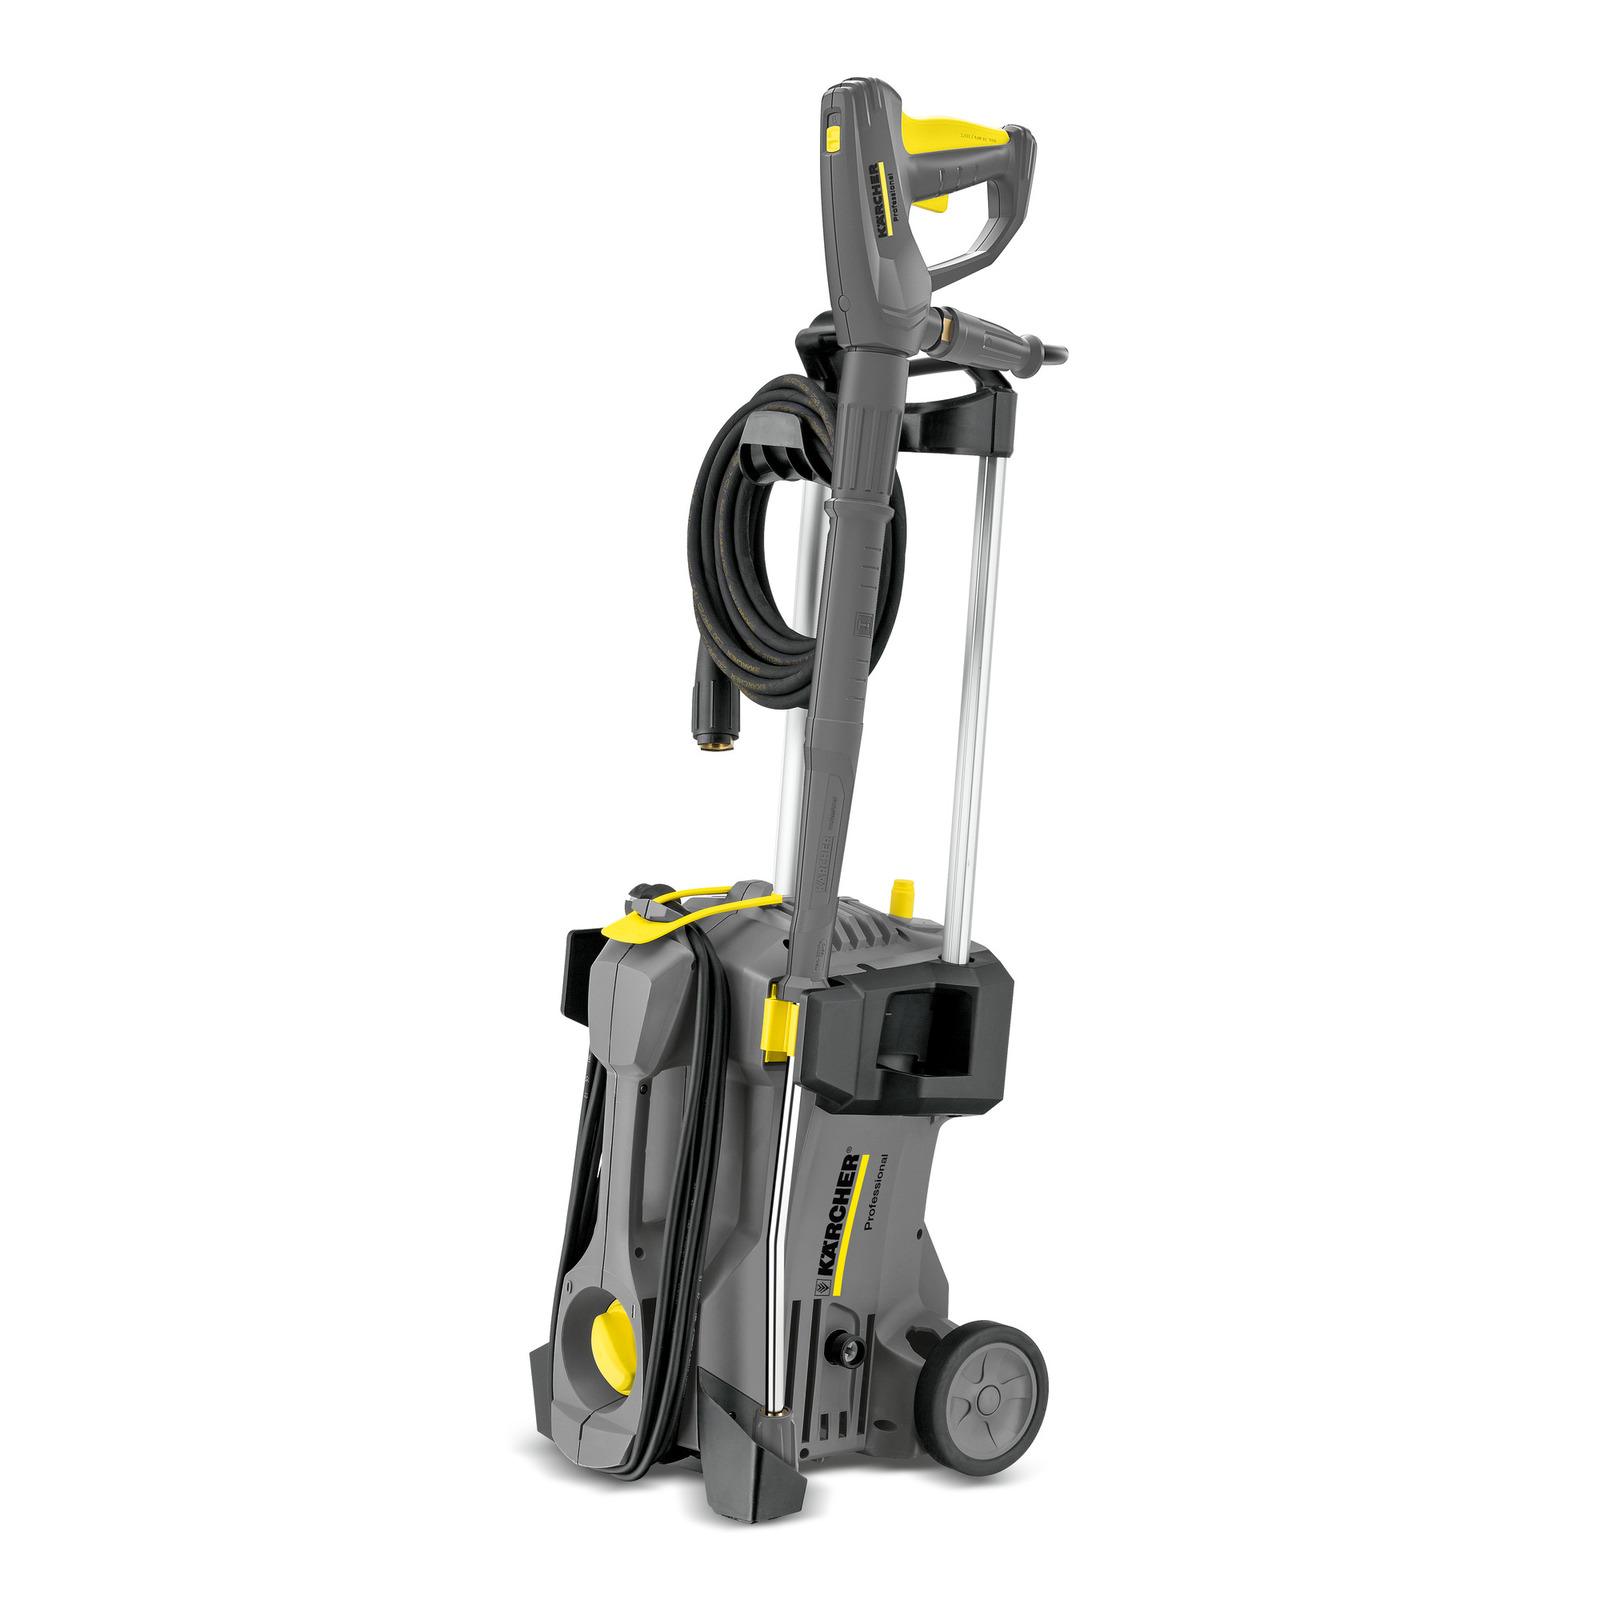 Karcher High Pressure Cold Water Cleaners - Single phase / 50Hz - HD 5/11 P